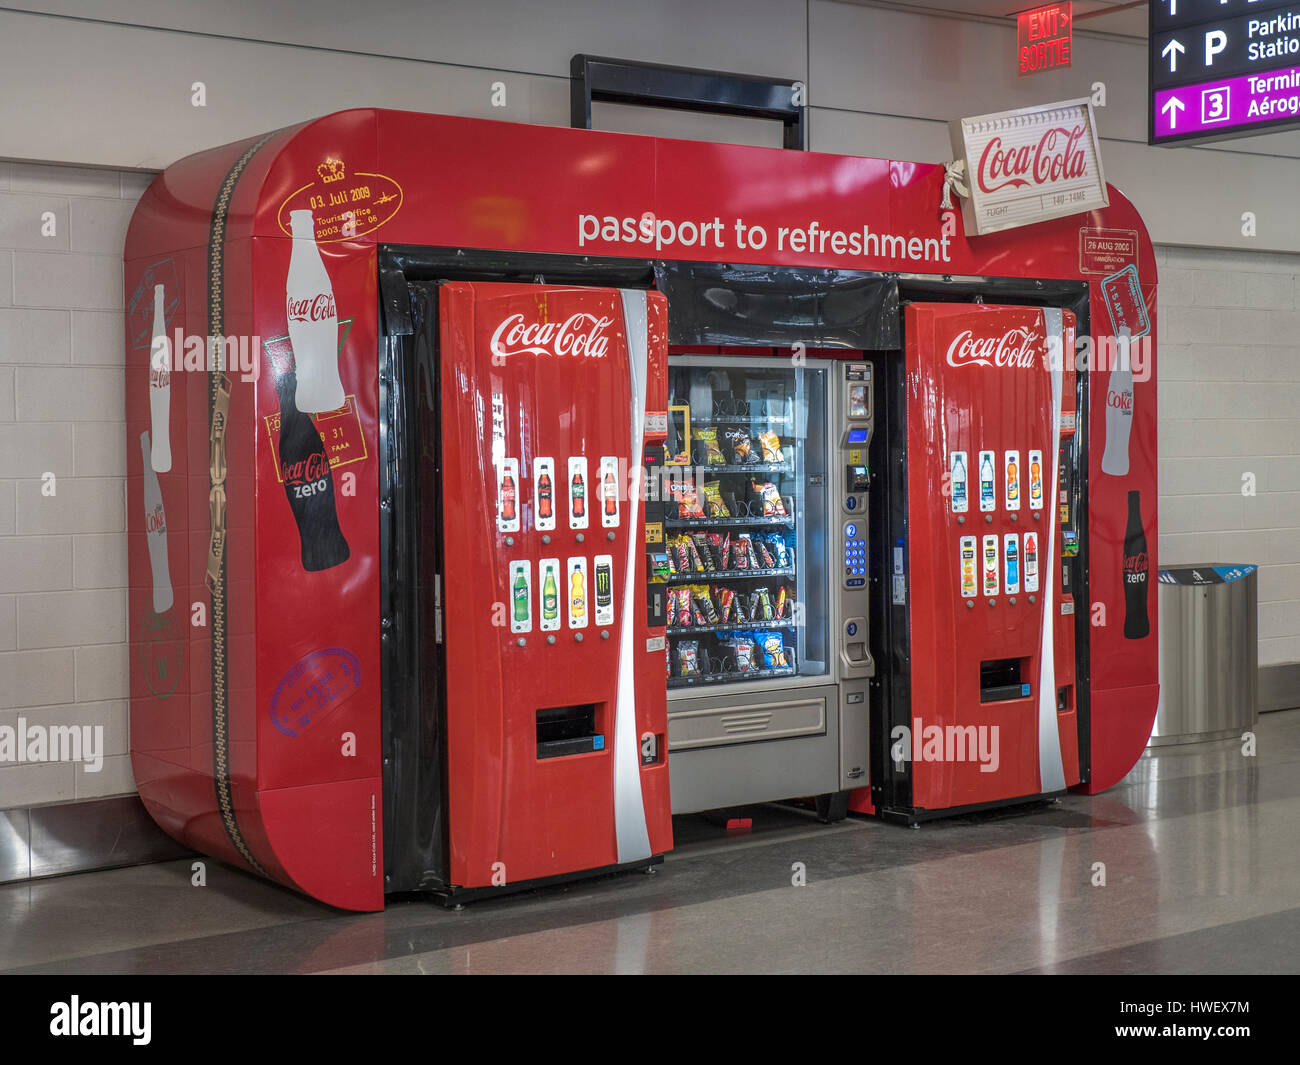 coca cola s new vending machine case analysis Free essay: coca cola company would like to introduce the market with the vending machine technology, a new technology with changed price according to.